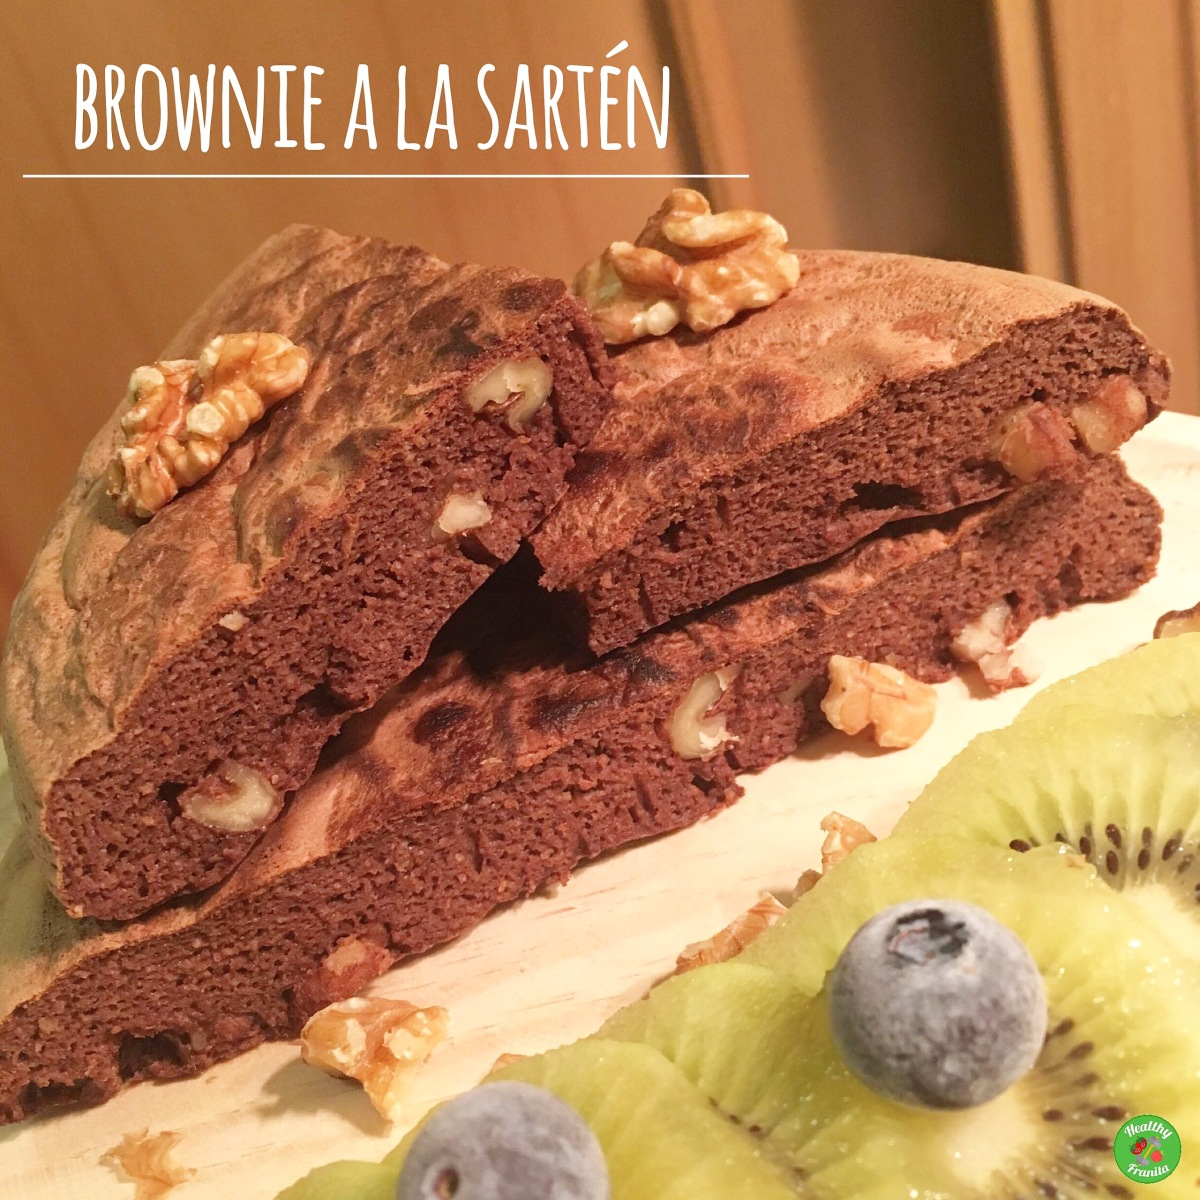 BROWNIE (en sartén)